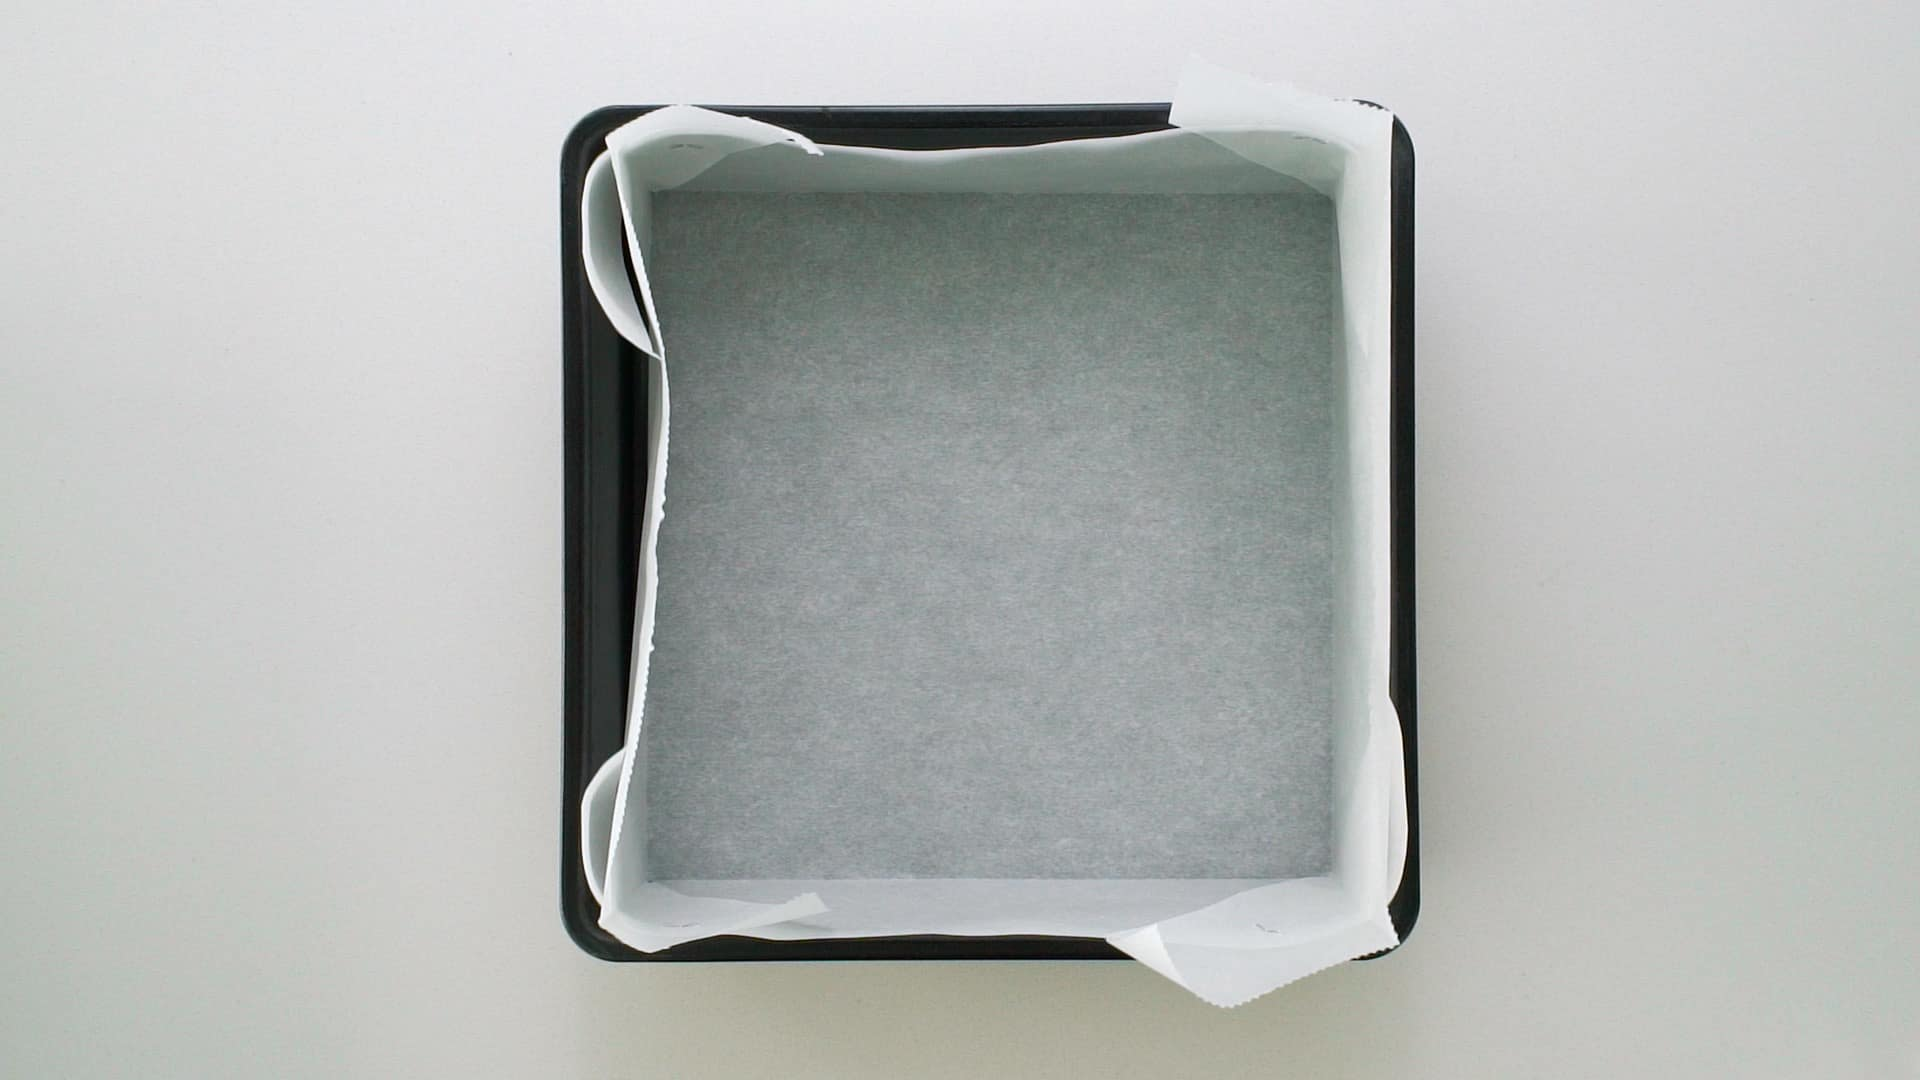 Square baking pan lined with parchment paper for making Datemaki.